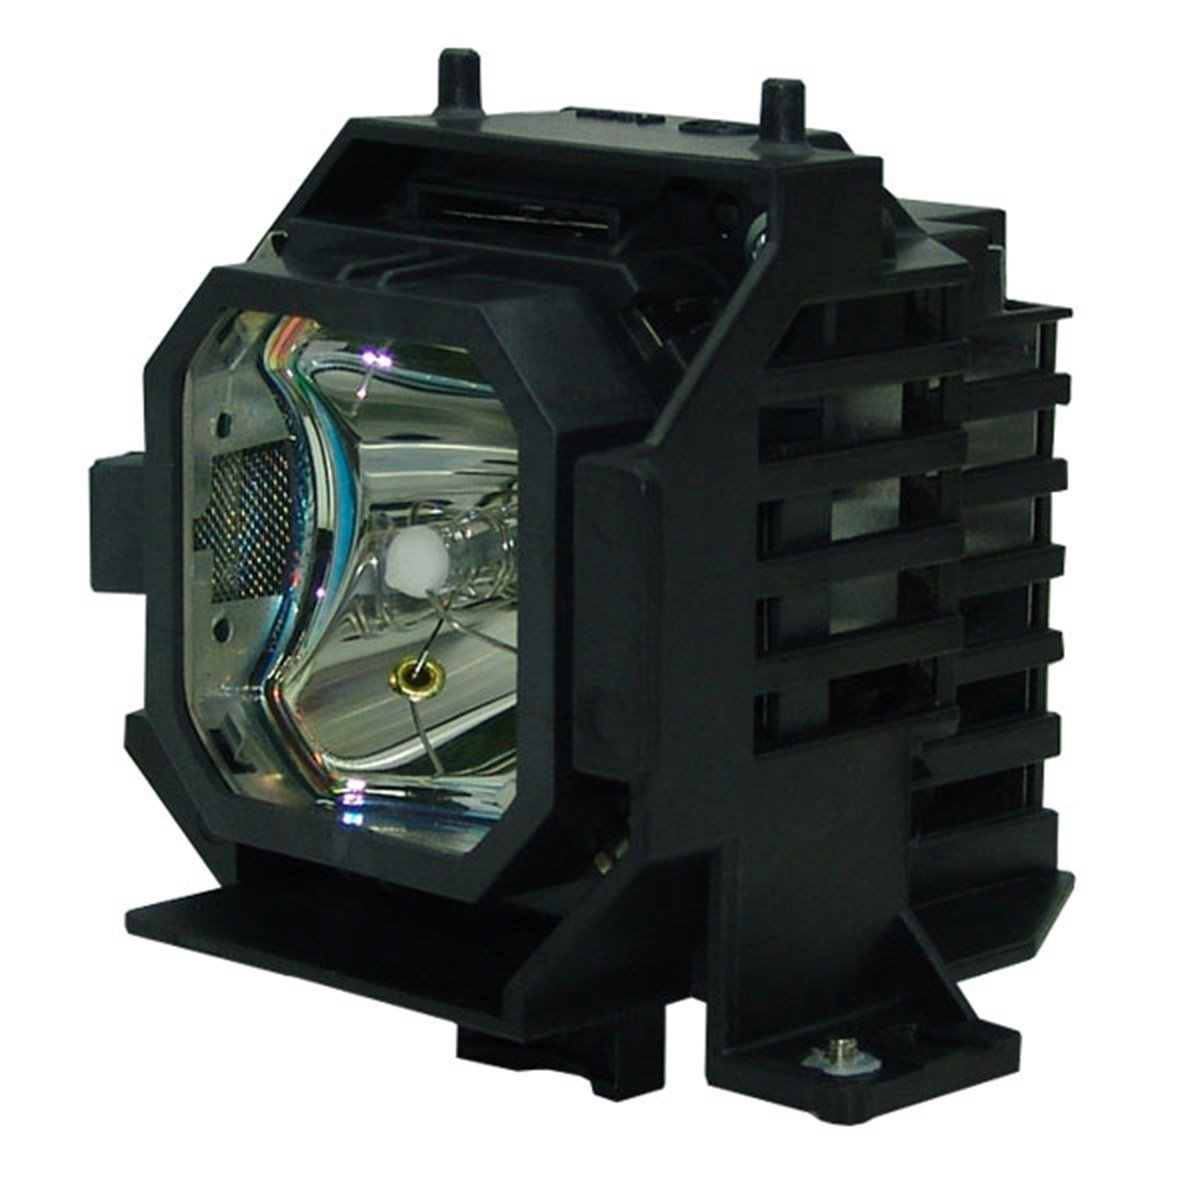 ELPLP31 V13H010L31 for Epson EMP-830 EMP-830P EMP-835 EMP-835P PowerLite 830P/ PowerLite 835p Projector Lamp Bulb With Housing elplp13 v13h010l13 original projector lamp with housing for epson emp 70 emp 50 powerlite 50c powerlite 70c